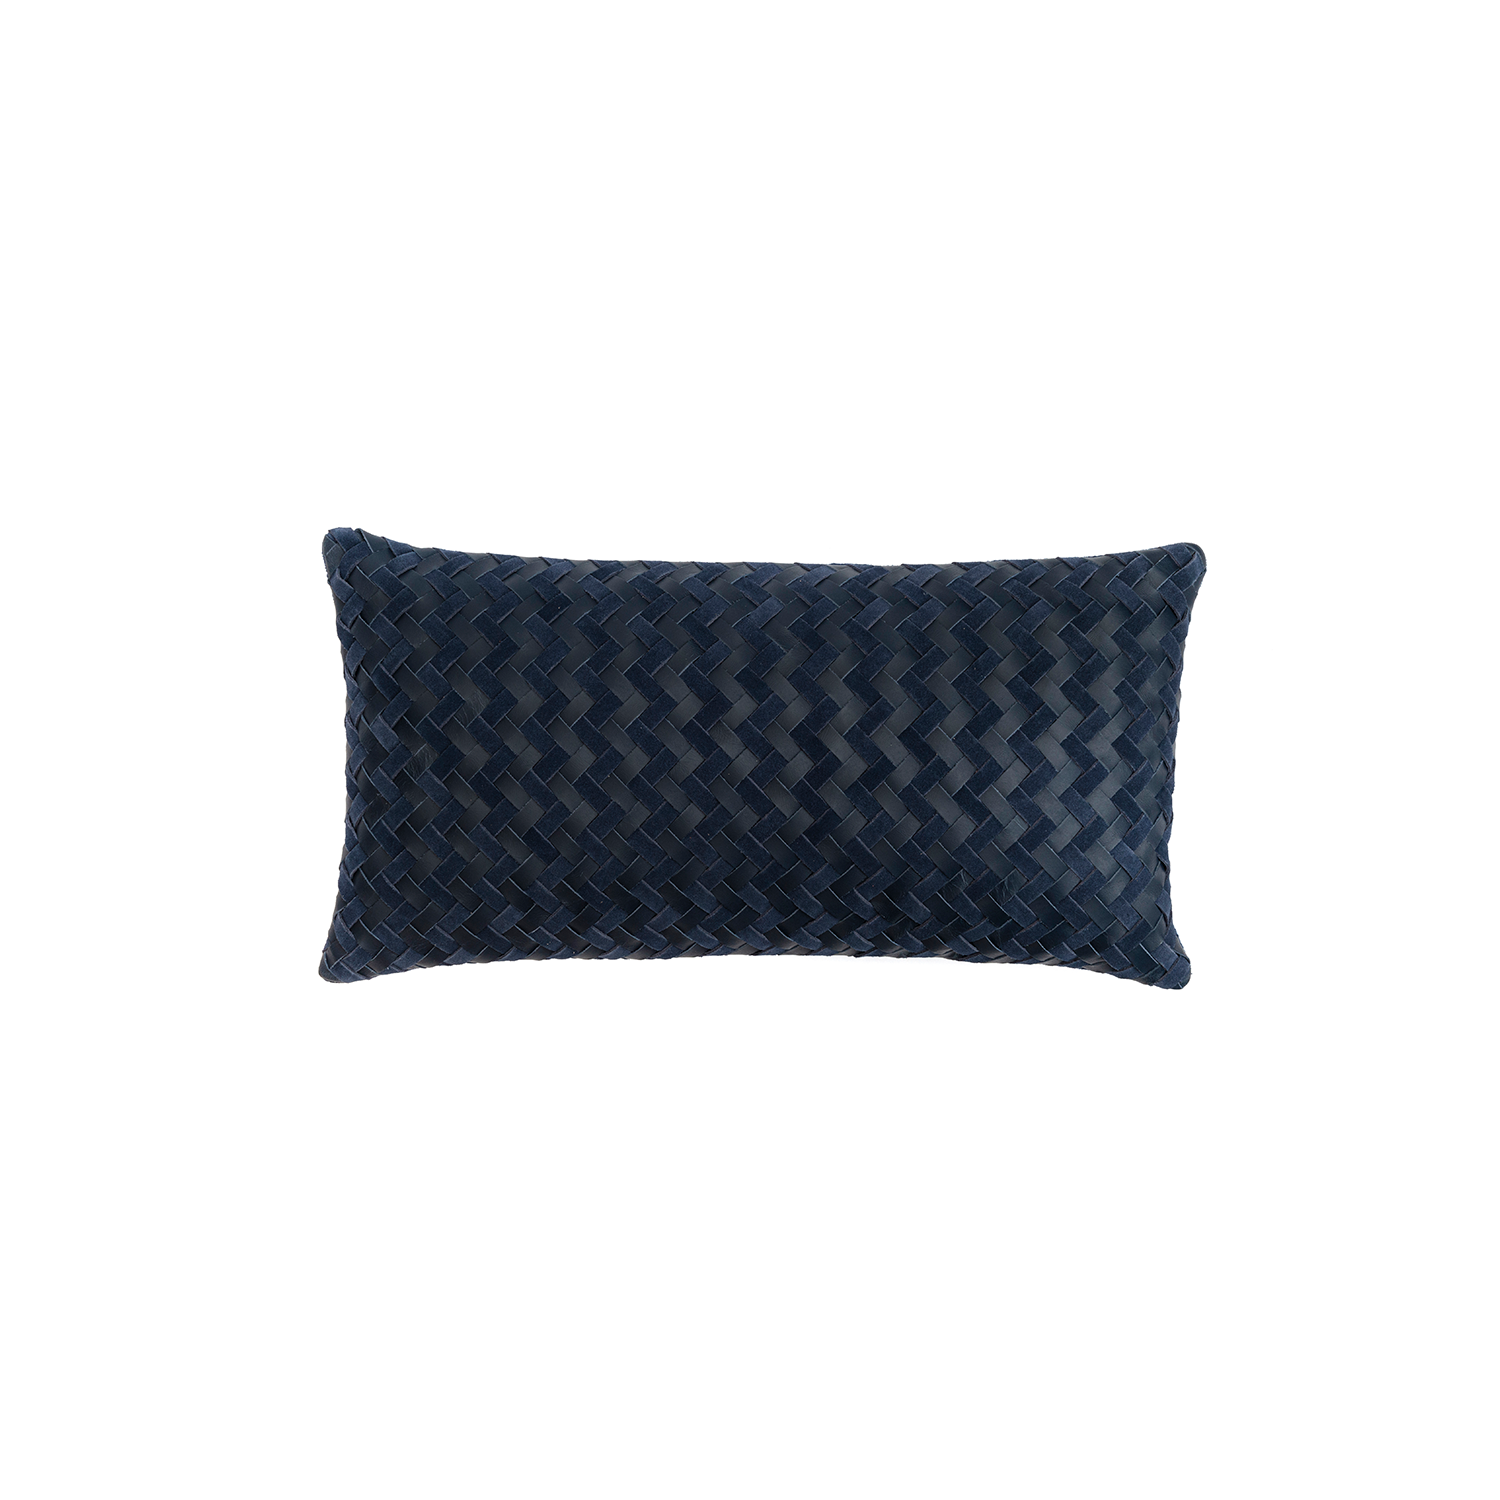 Maxi Aspen Woven Leather Cushion Small - The Maxi Aspen Woven Leather Cushion is designed to complement an ambient with a natural and sophisticated feeling. This cushion style is available in pleated leather or pleated suede leather. Elisa Atheniense woven handmade leather cushions are specially manufactured in Brazil using an exclusive treated leather that brings the soft feel touch to every single piece.   The front panel is handwoven in leather and the back panel is 100% Pes, made in Brazil.  The inner cushion is available in Hollow Fibre and European Duck Feathers, made in the UK.  Please enquire for more information and see colour chart for reference.   | Matter of Stuff